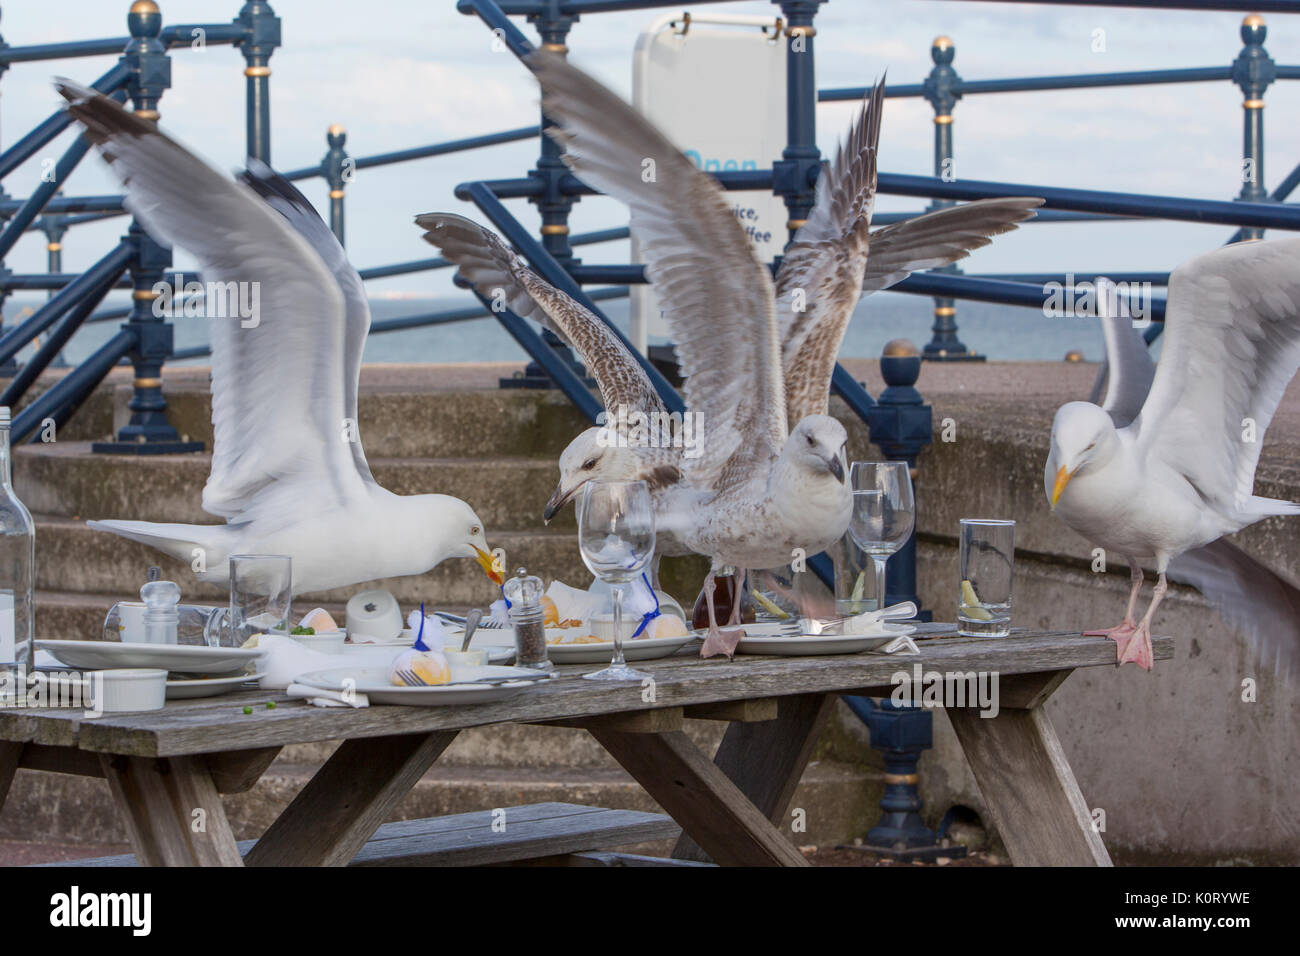 Seagulls scavenging for food. - Stock Image